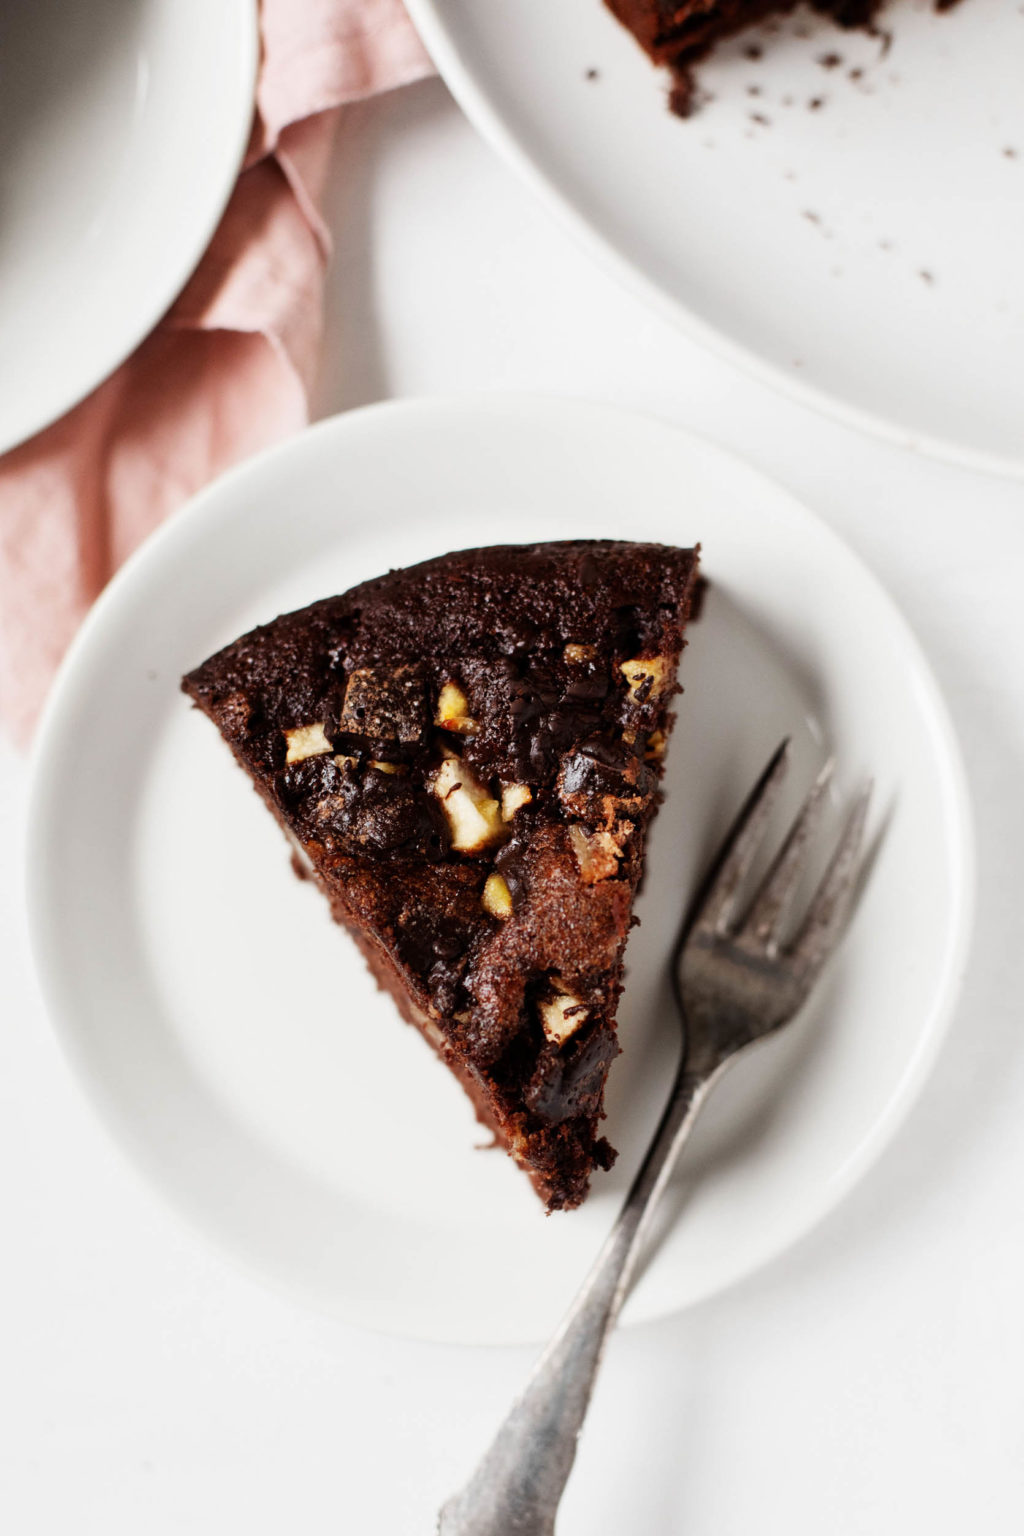 A neat slice of festive chocolate pear cake is perched on a dessert plate, with a small fork for serving.